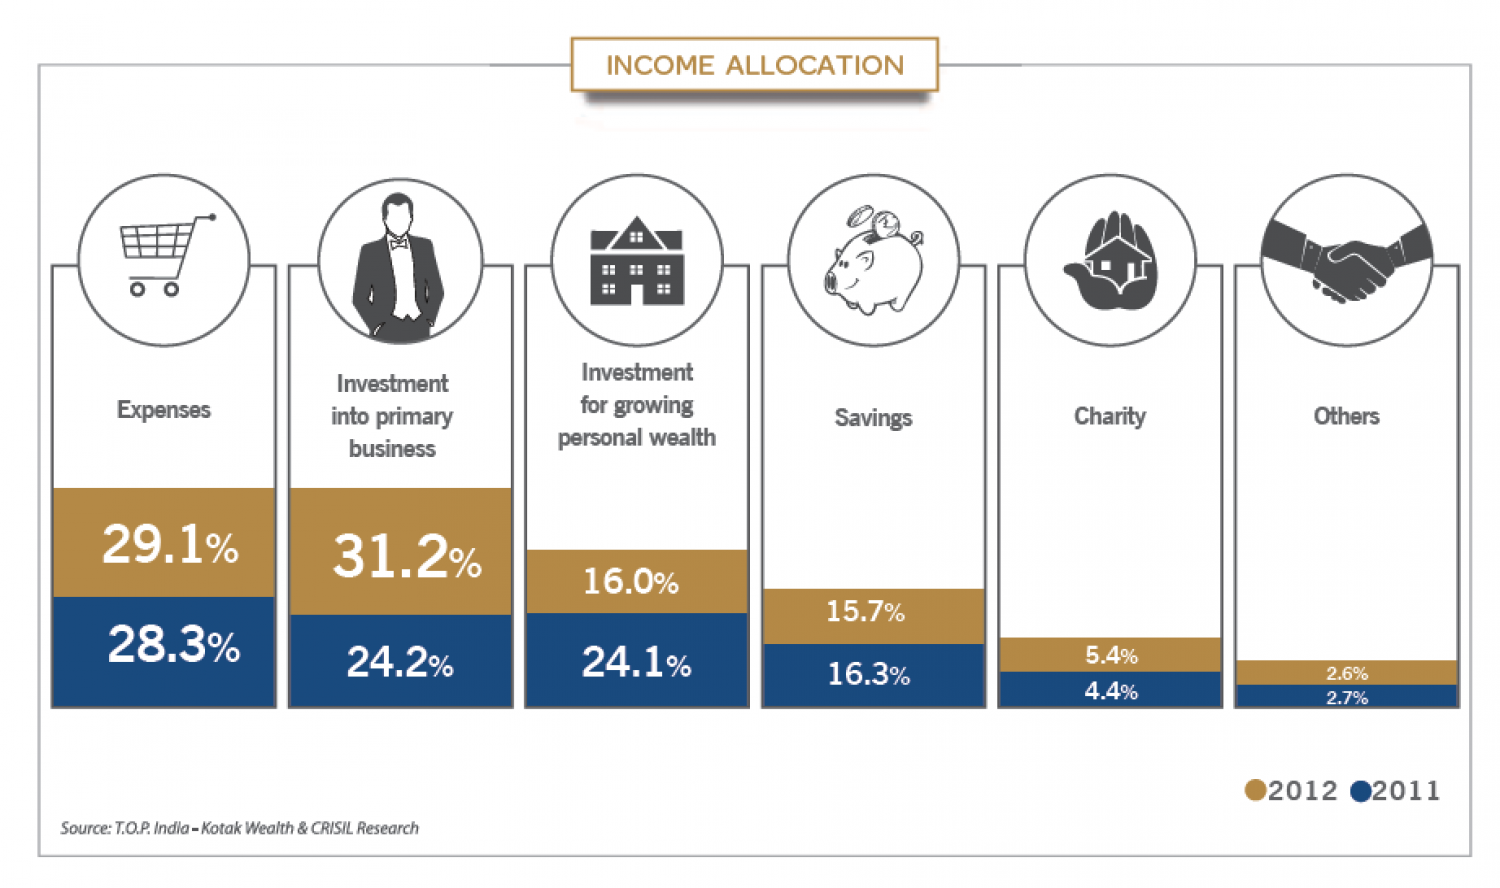 Income Allocation of HNIs in India Infographic